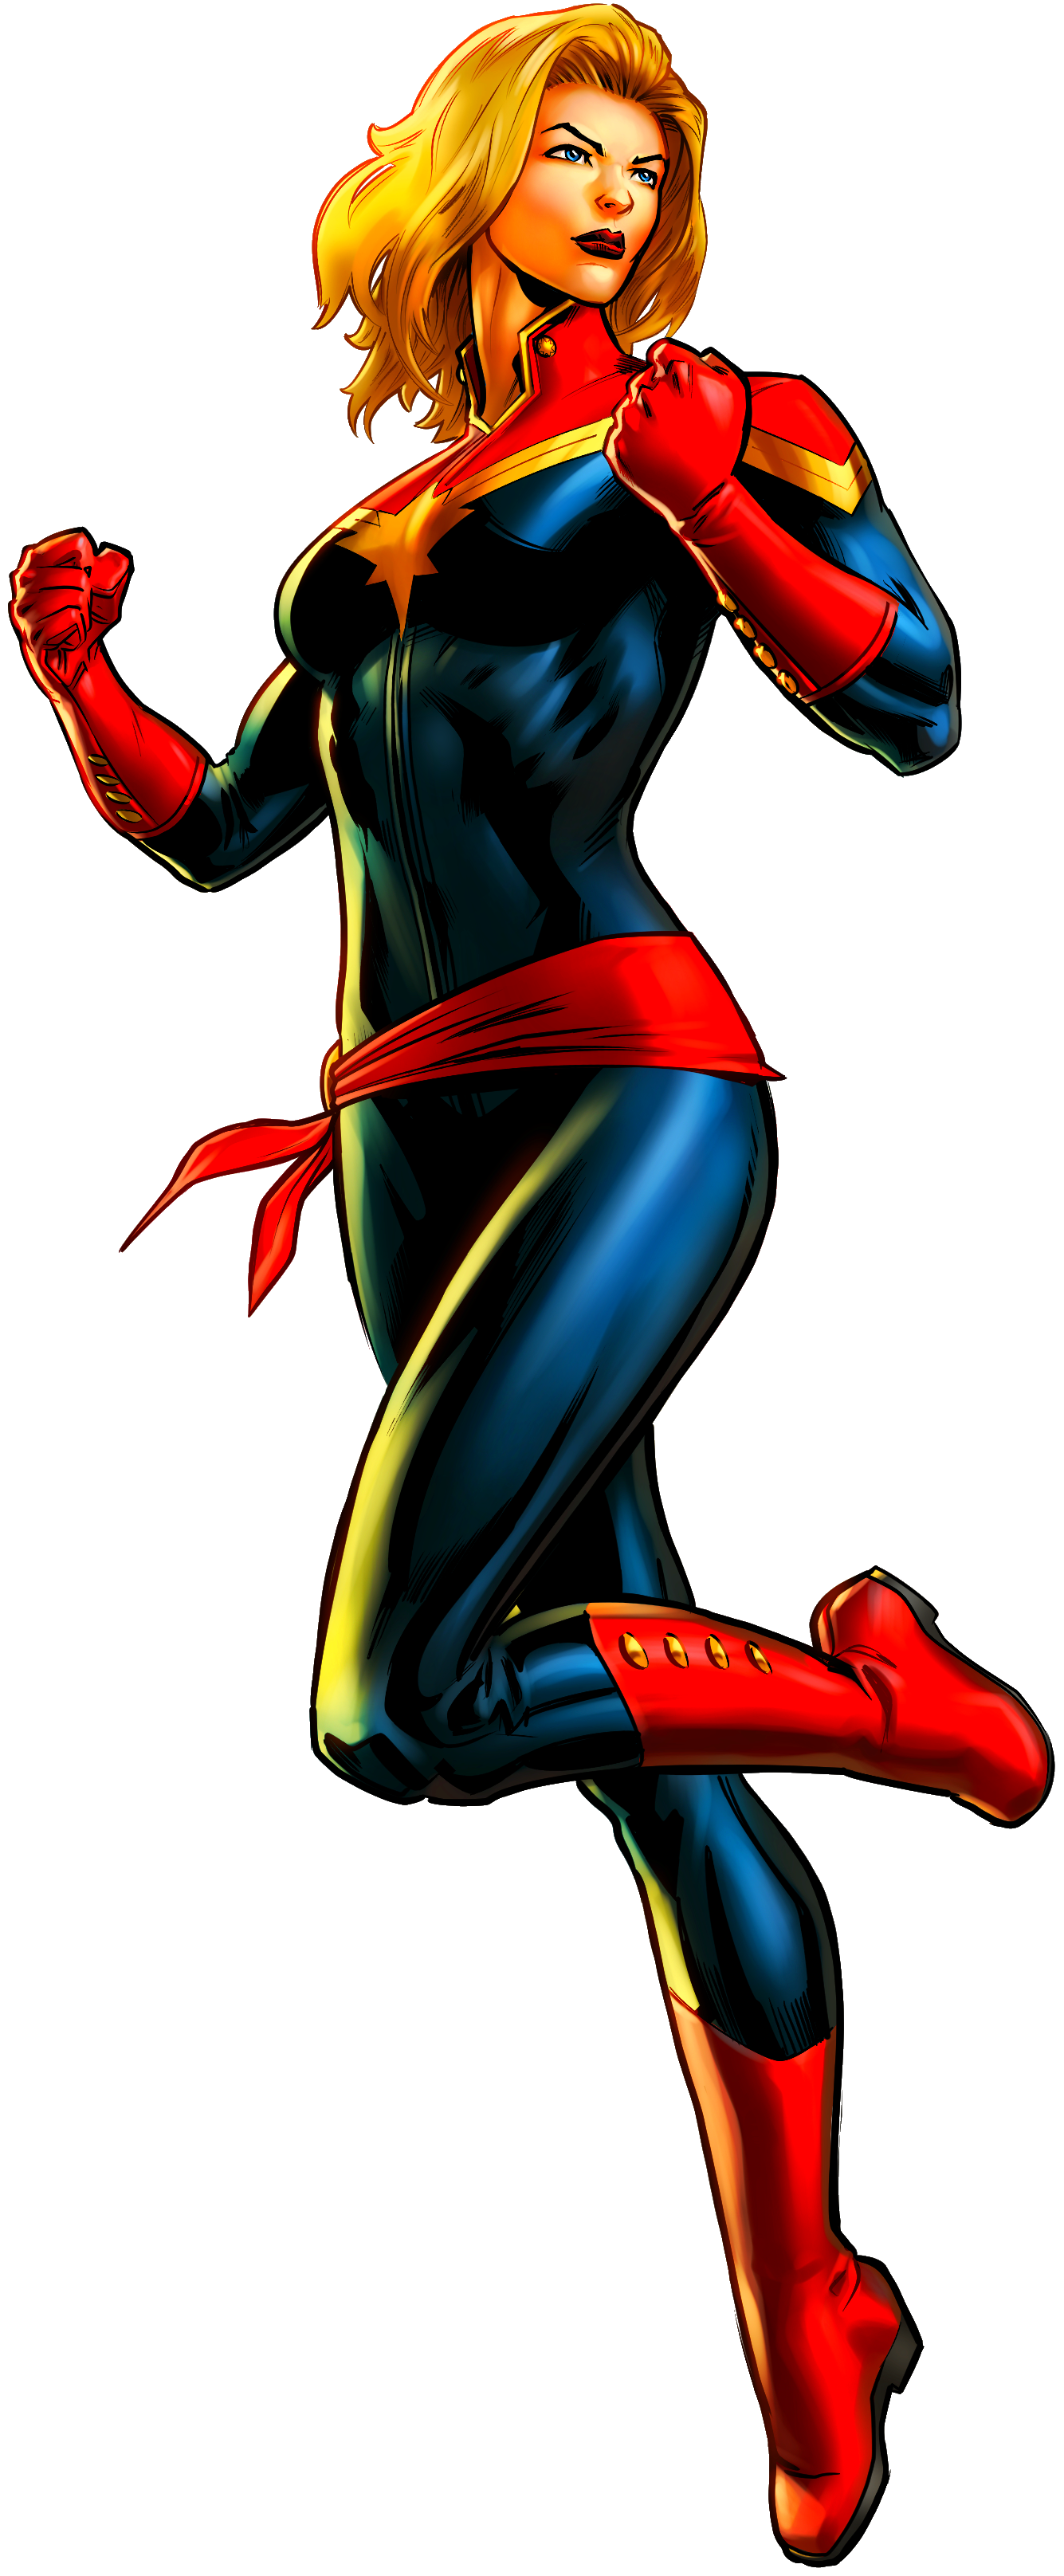 Captain marvel comic png. Image result for reference